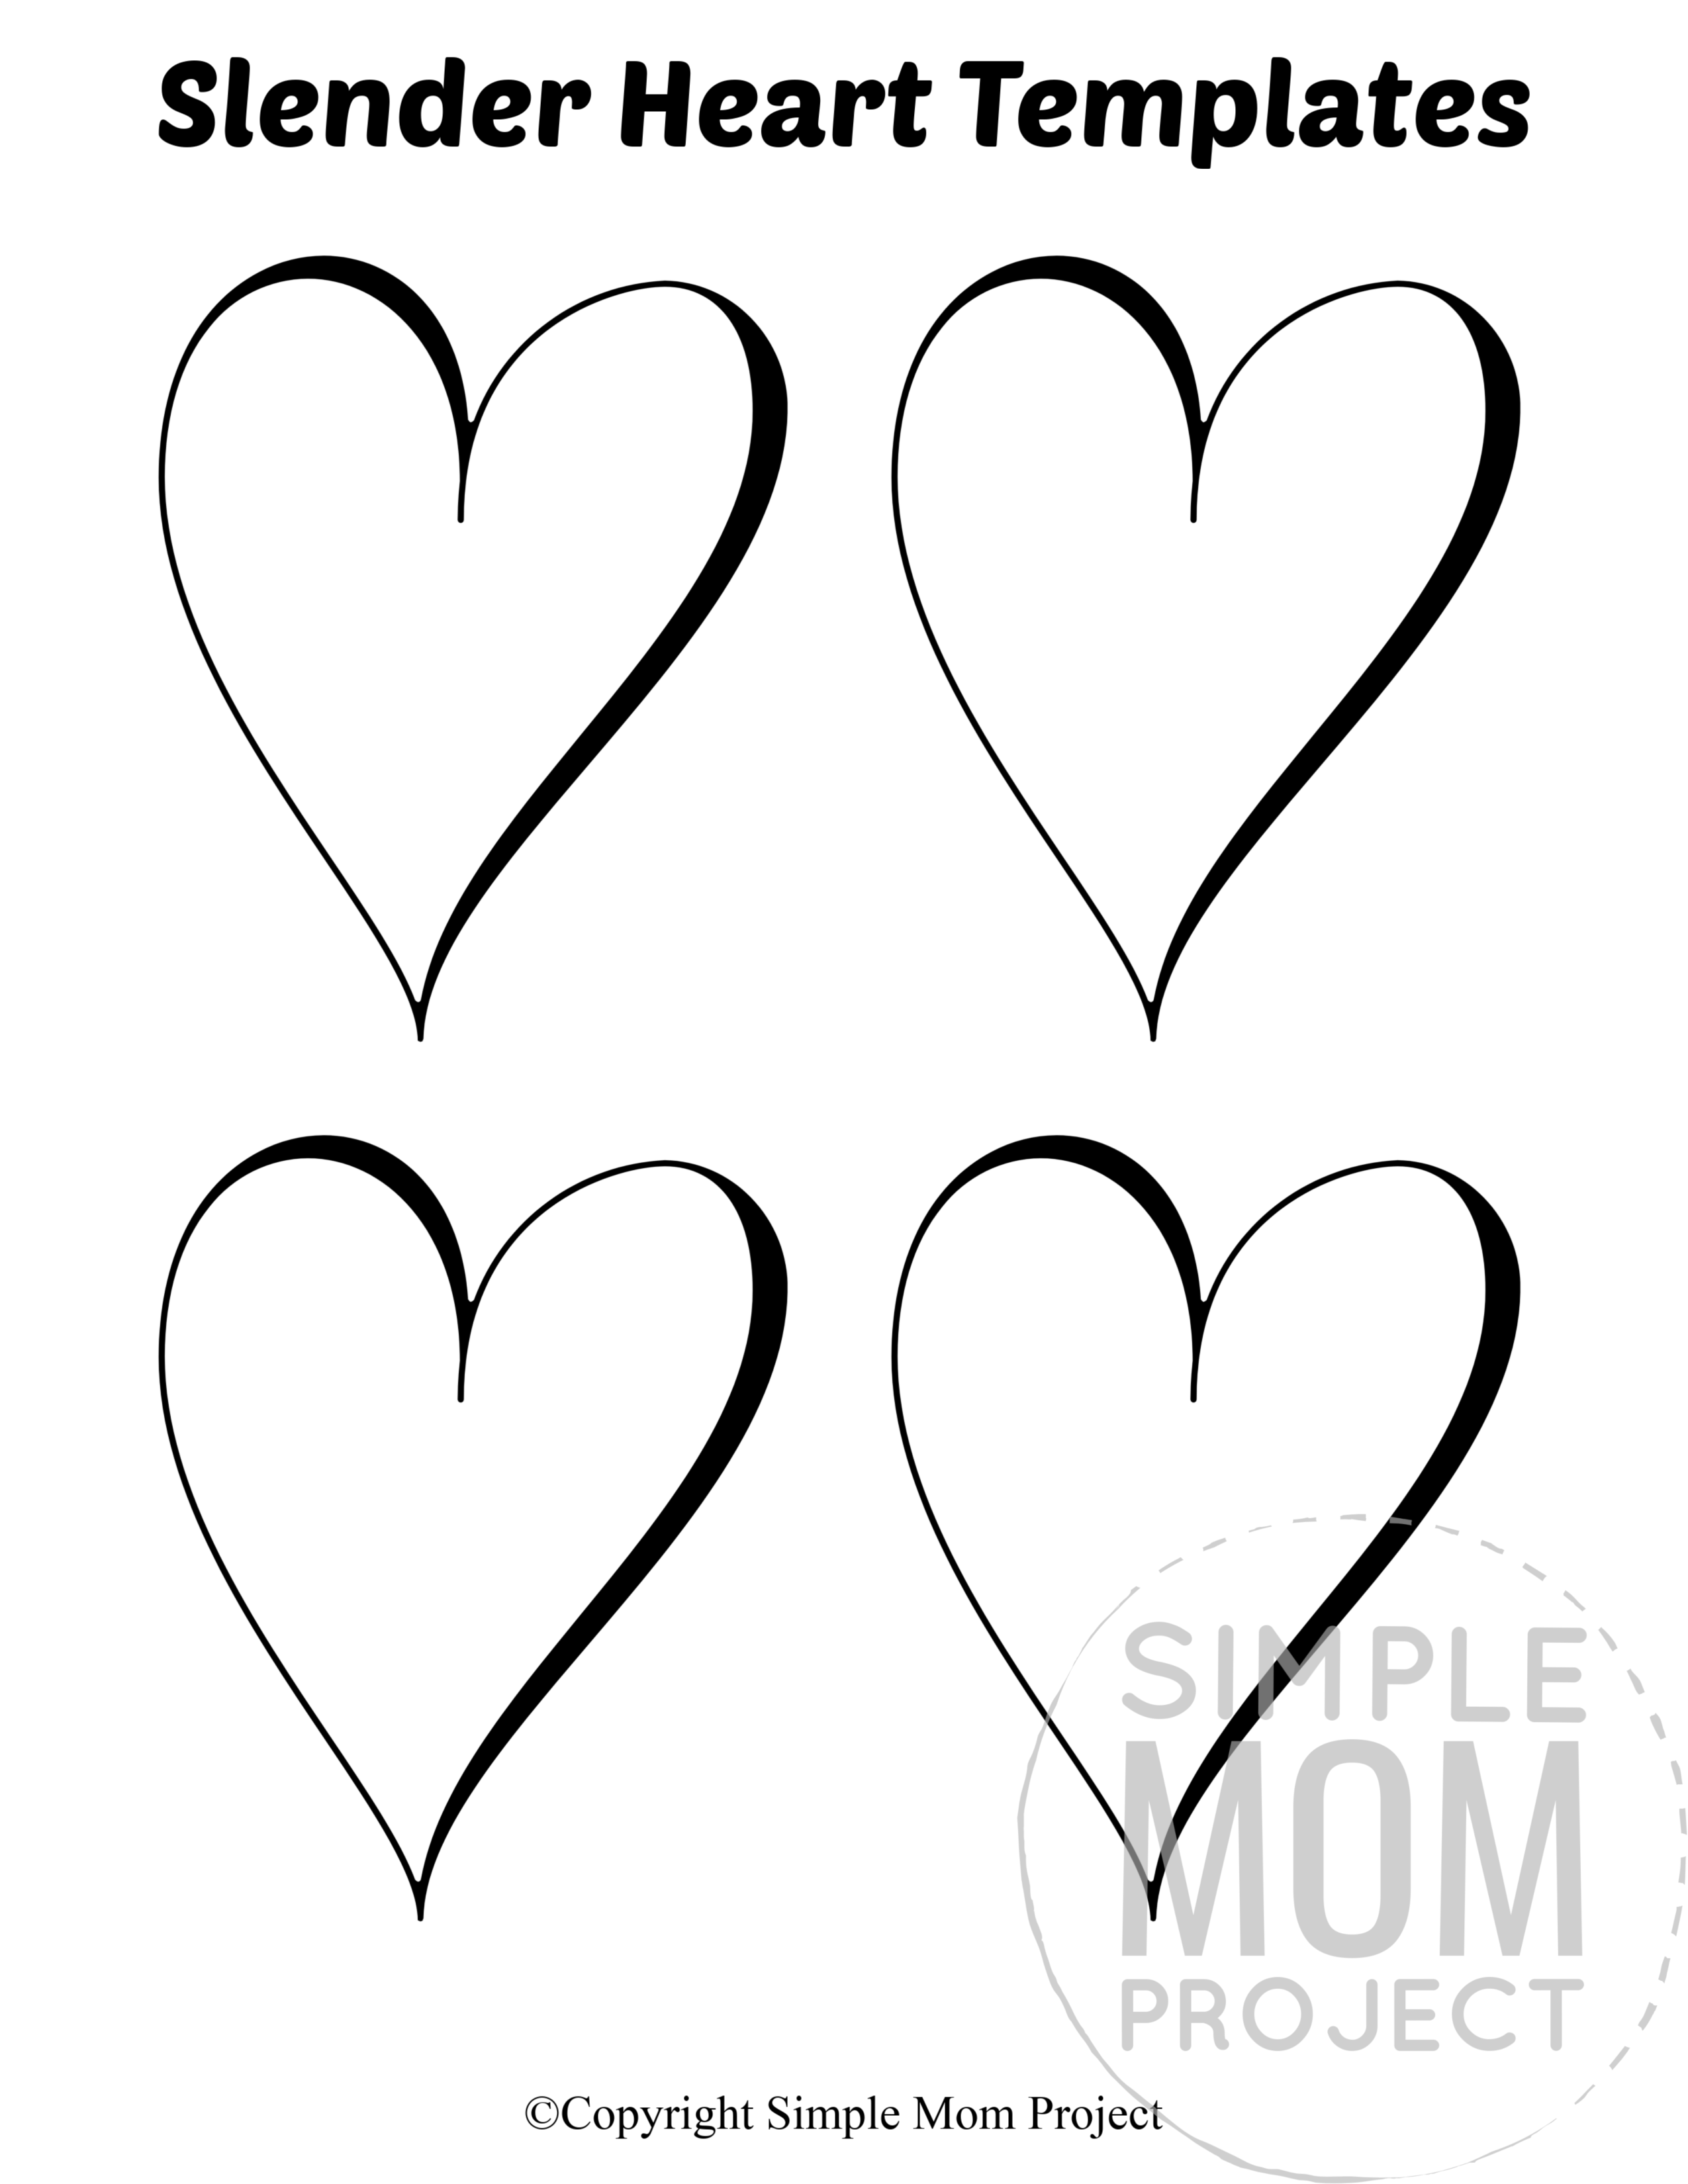 Slender Small Heart Shaped Template Full Page Cutout outline stencil